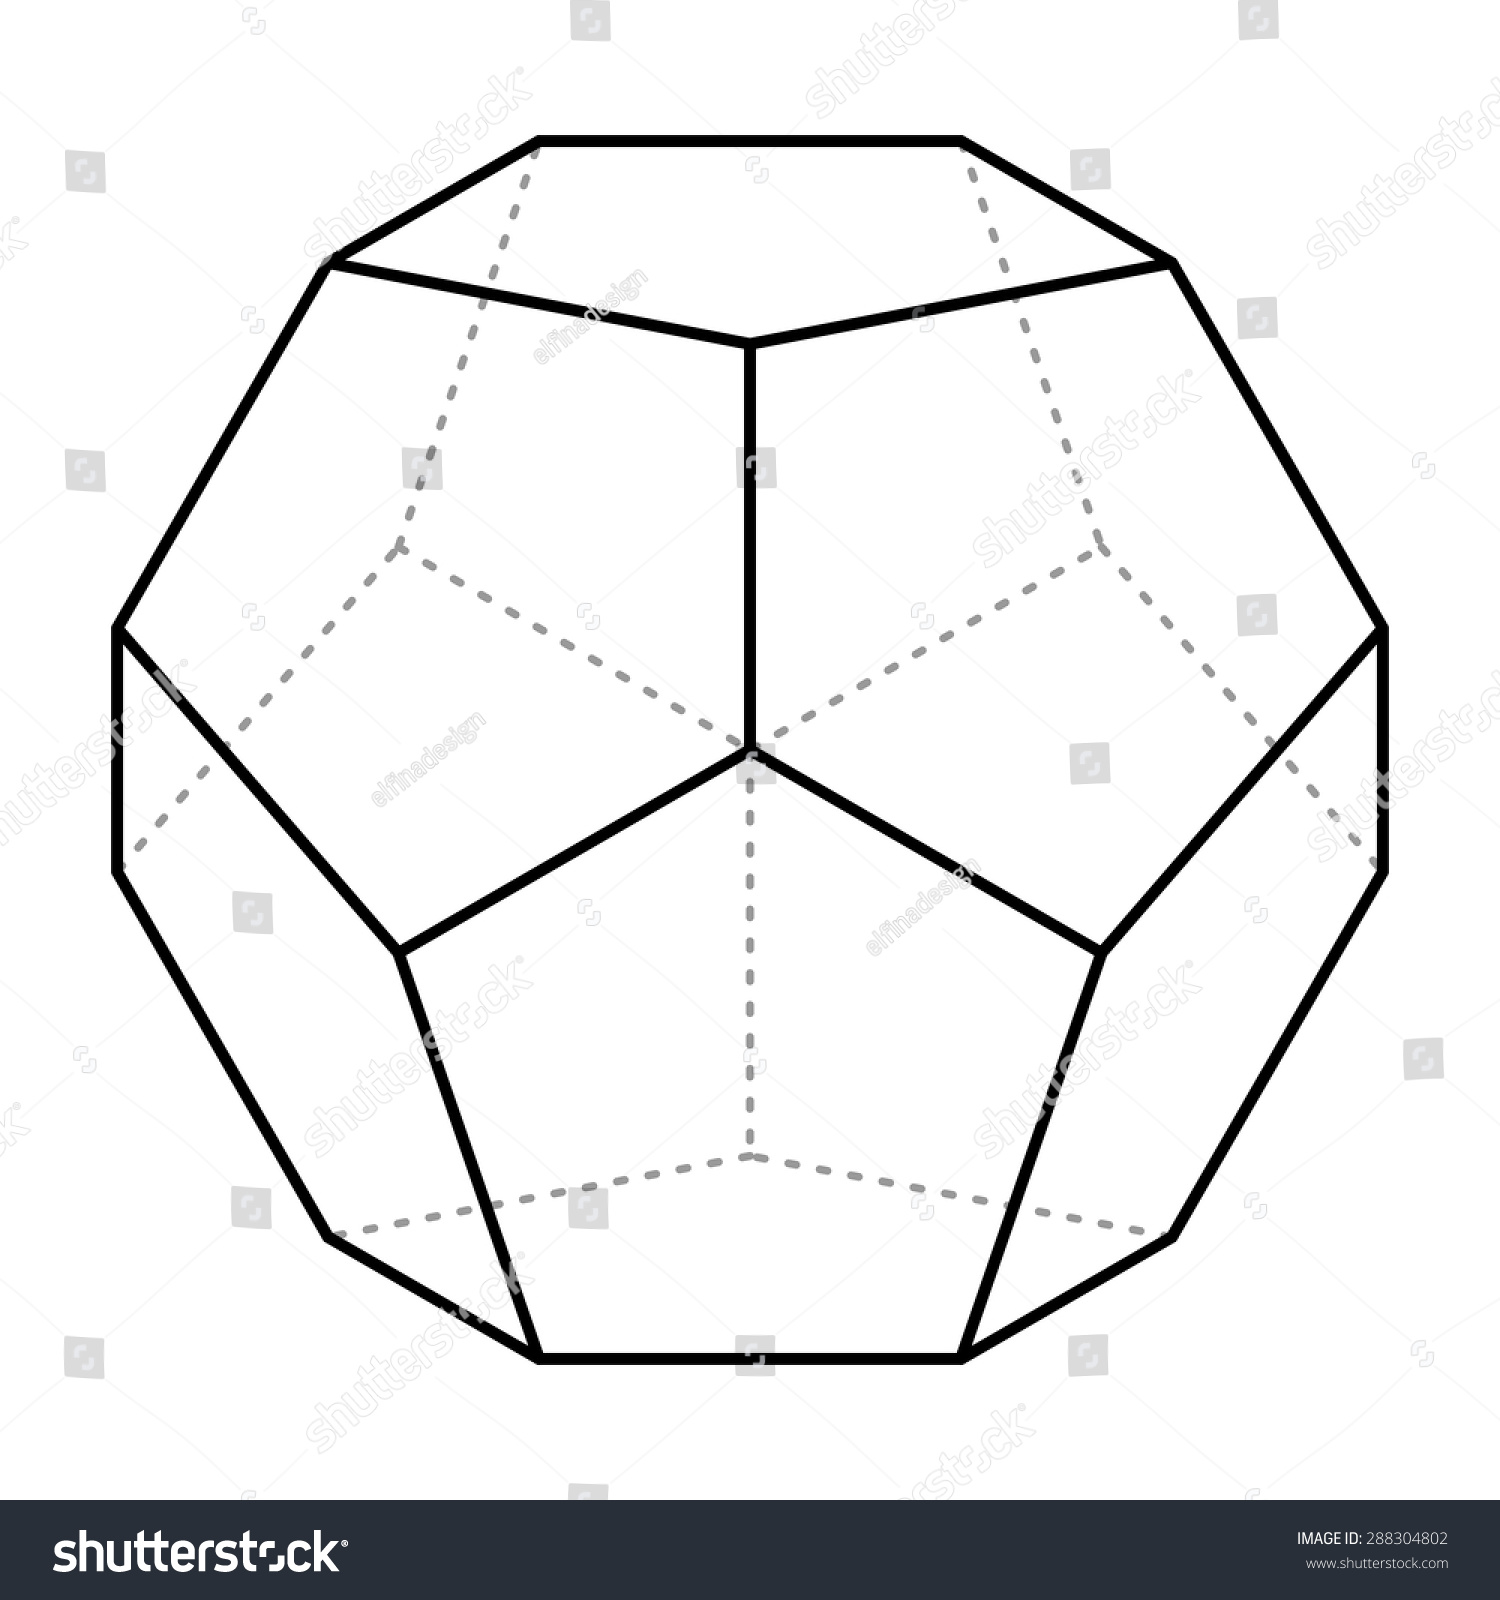 royalty free dodecahedron line drawing vector 288304802 stock